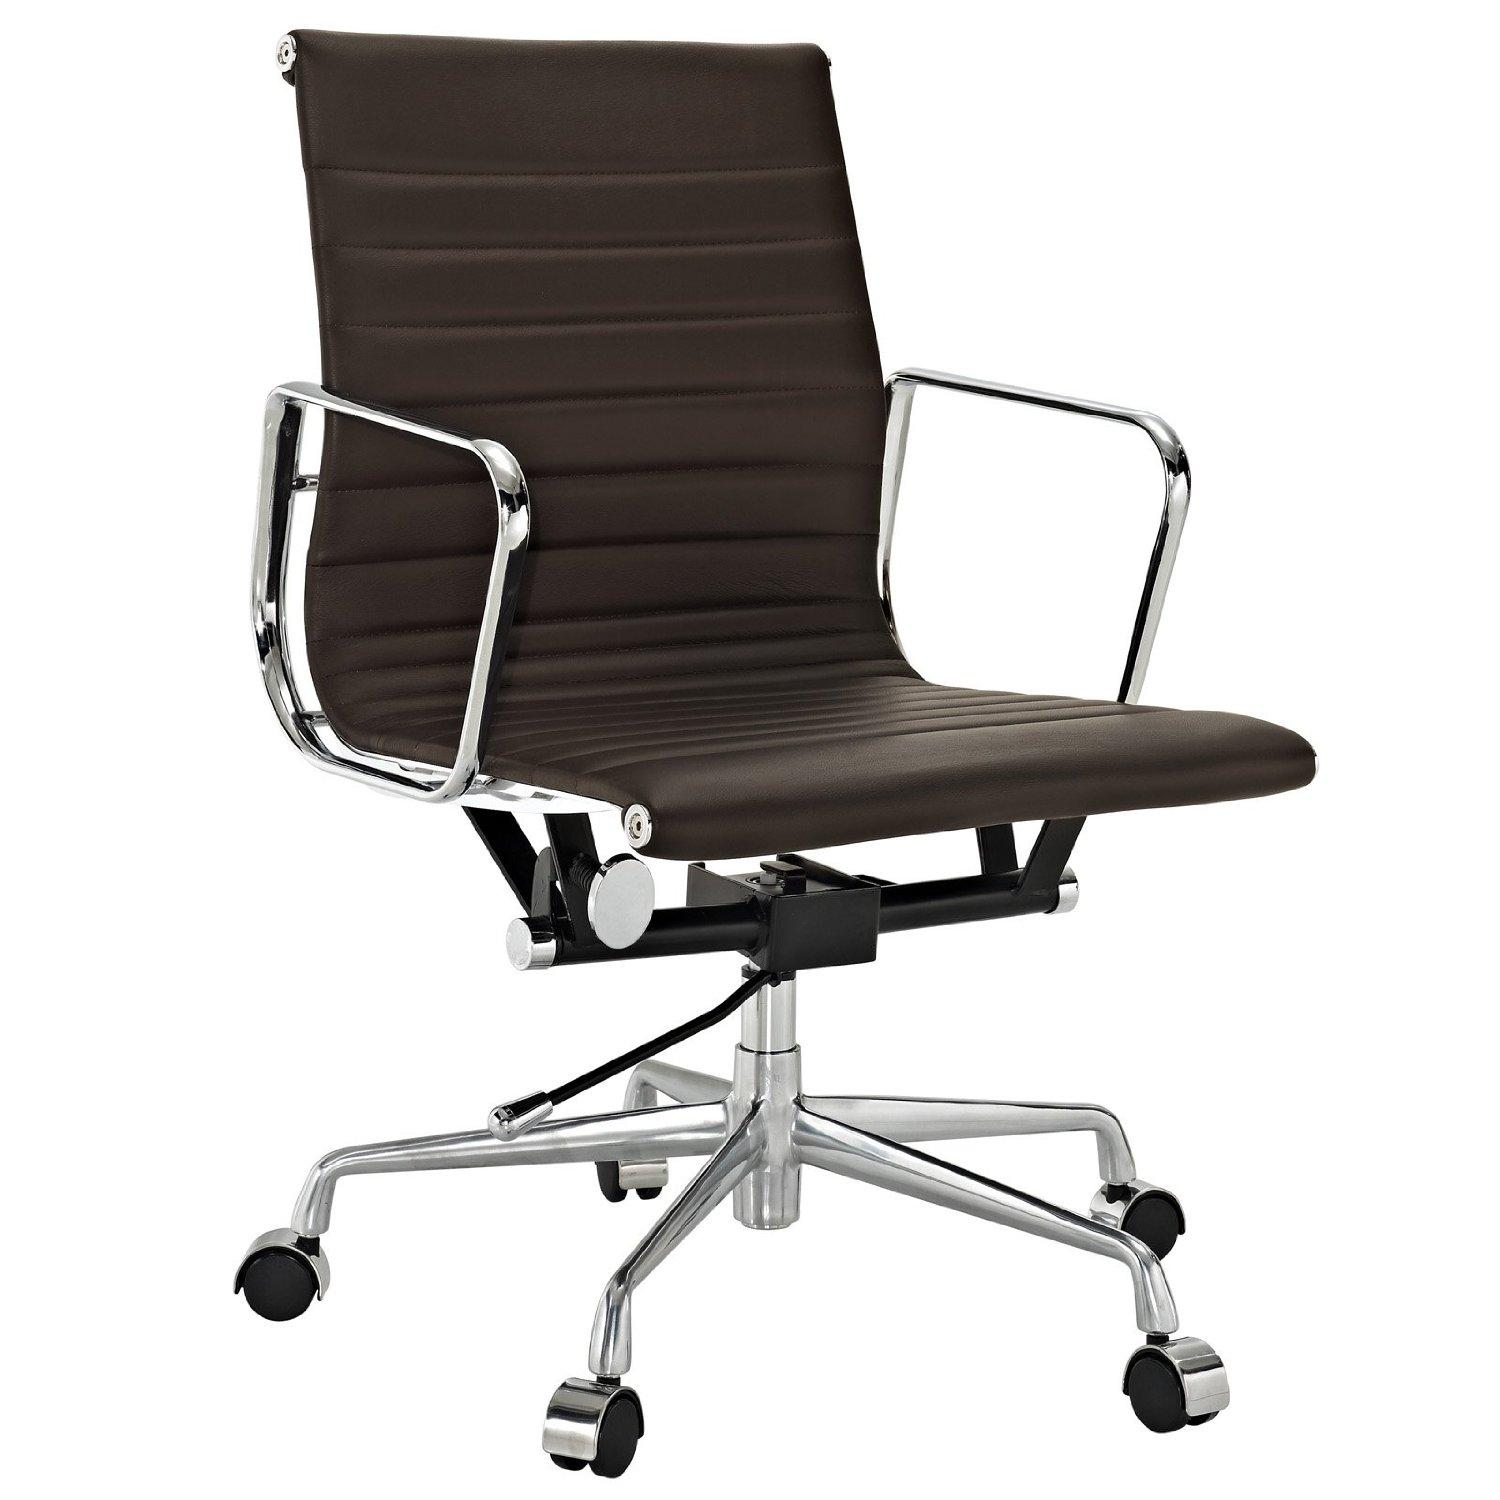 Modern Office Desk Chairs Amazon Lexmod Ribbed Mid Back Office Chair In Brown